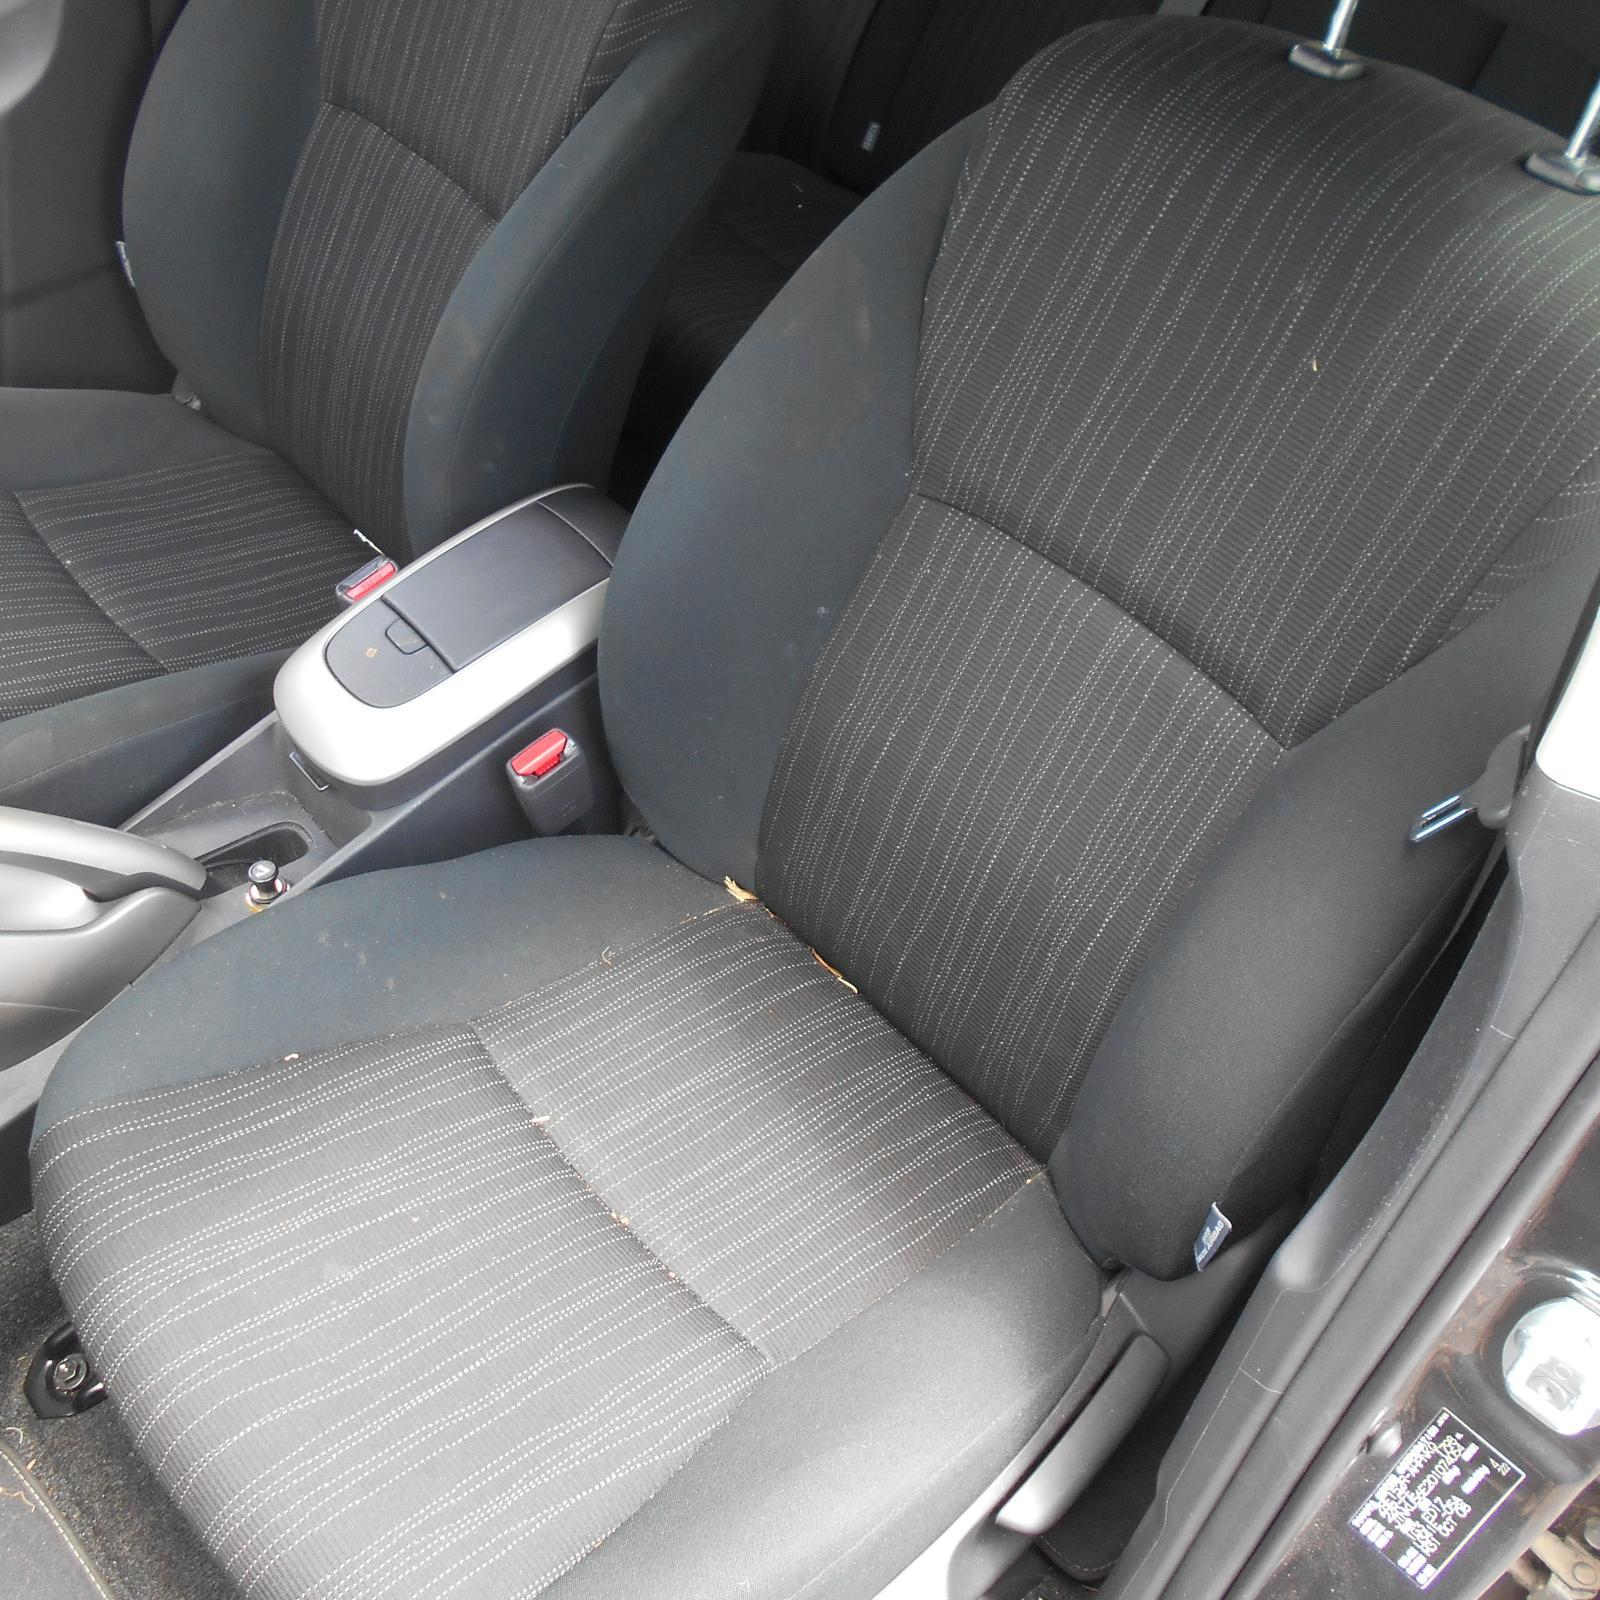 TOYOTA COROLLA, Front Seat, LH FRONT, ZRE152/153R, W/ AIRBAG TYPE, 03/07-10/13